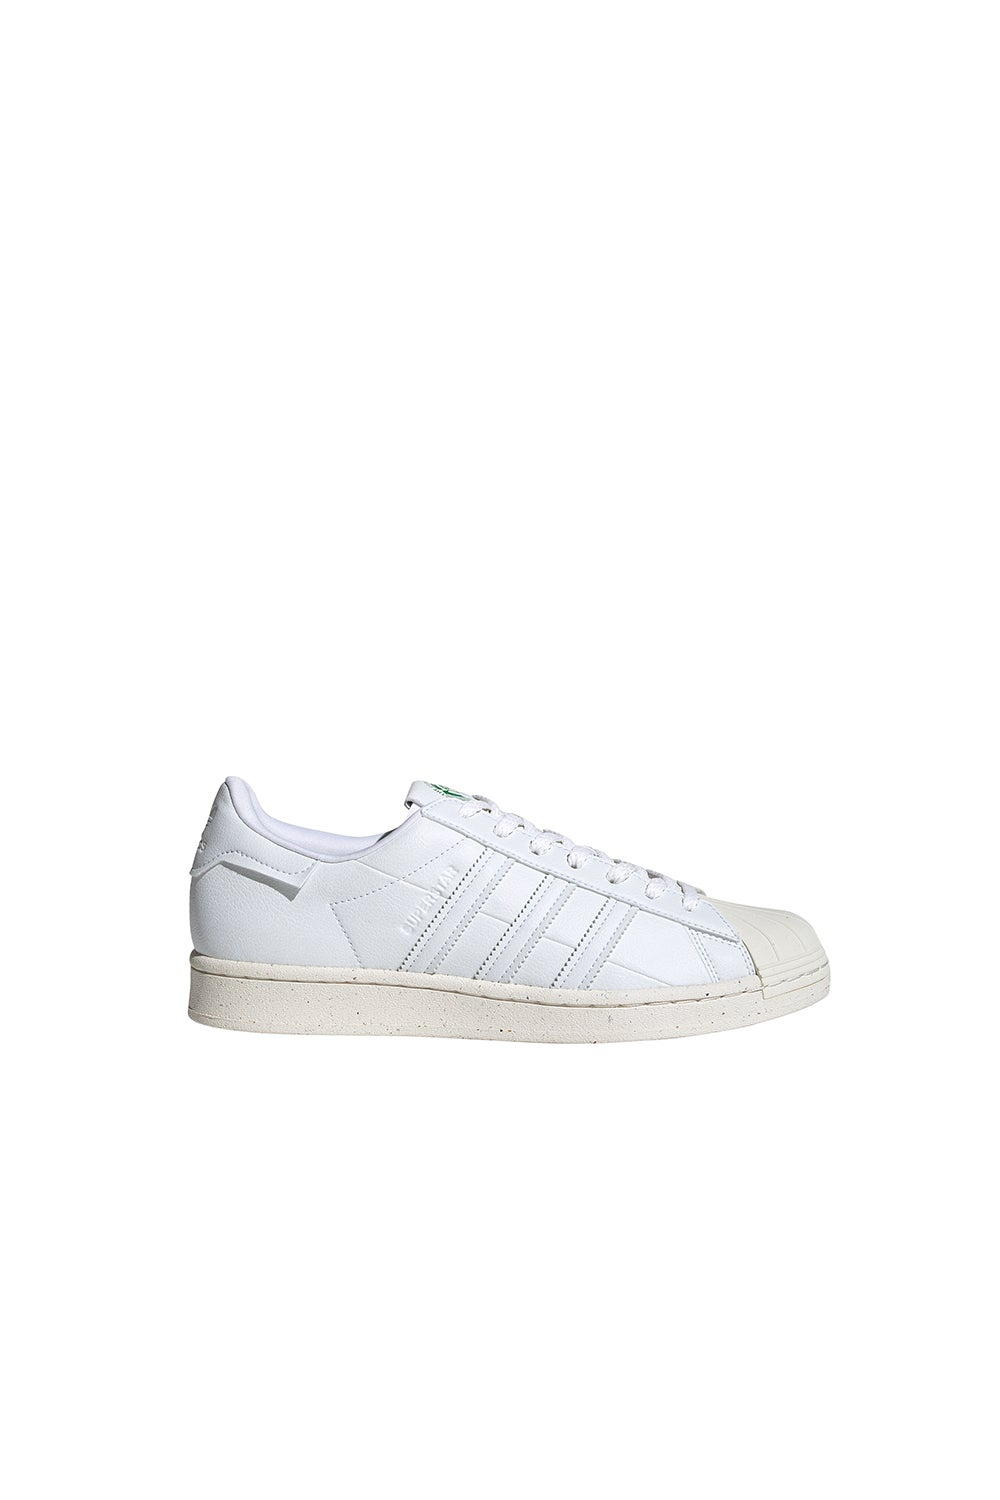 adidas Superstar FTWR White/Green